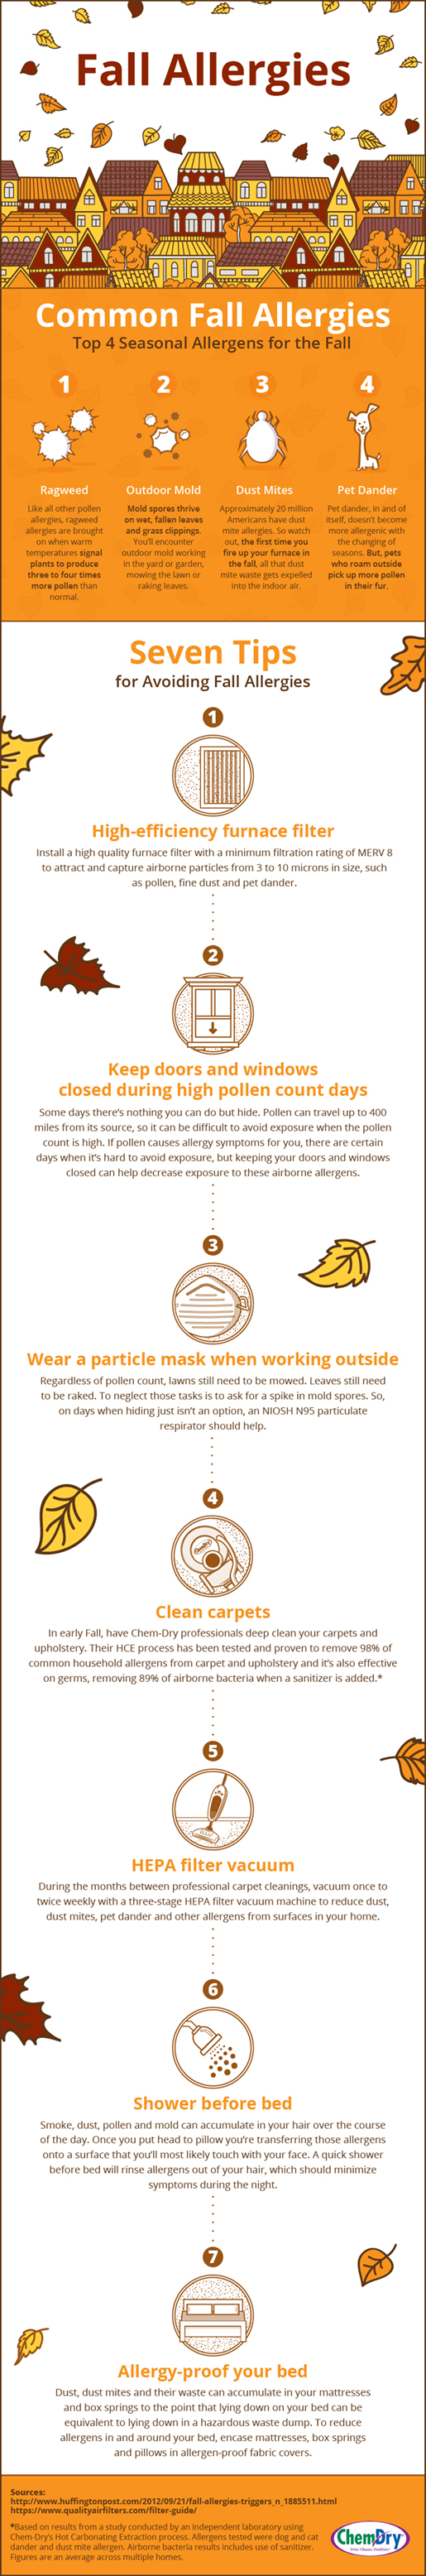 7 Tips for Avoiding Fall Allergies